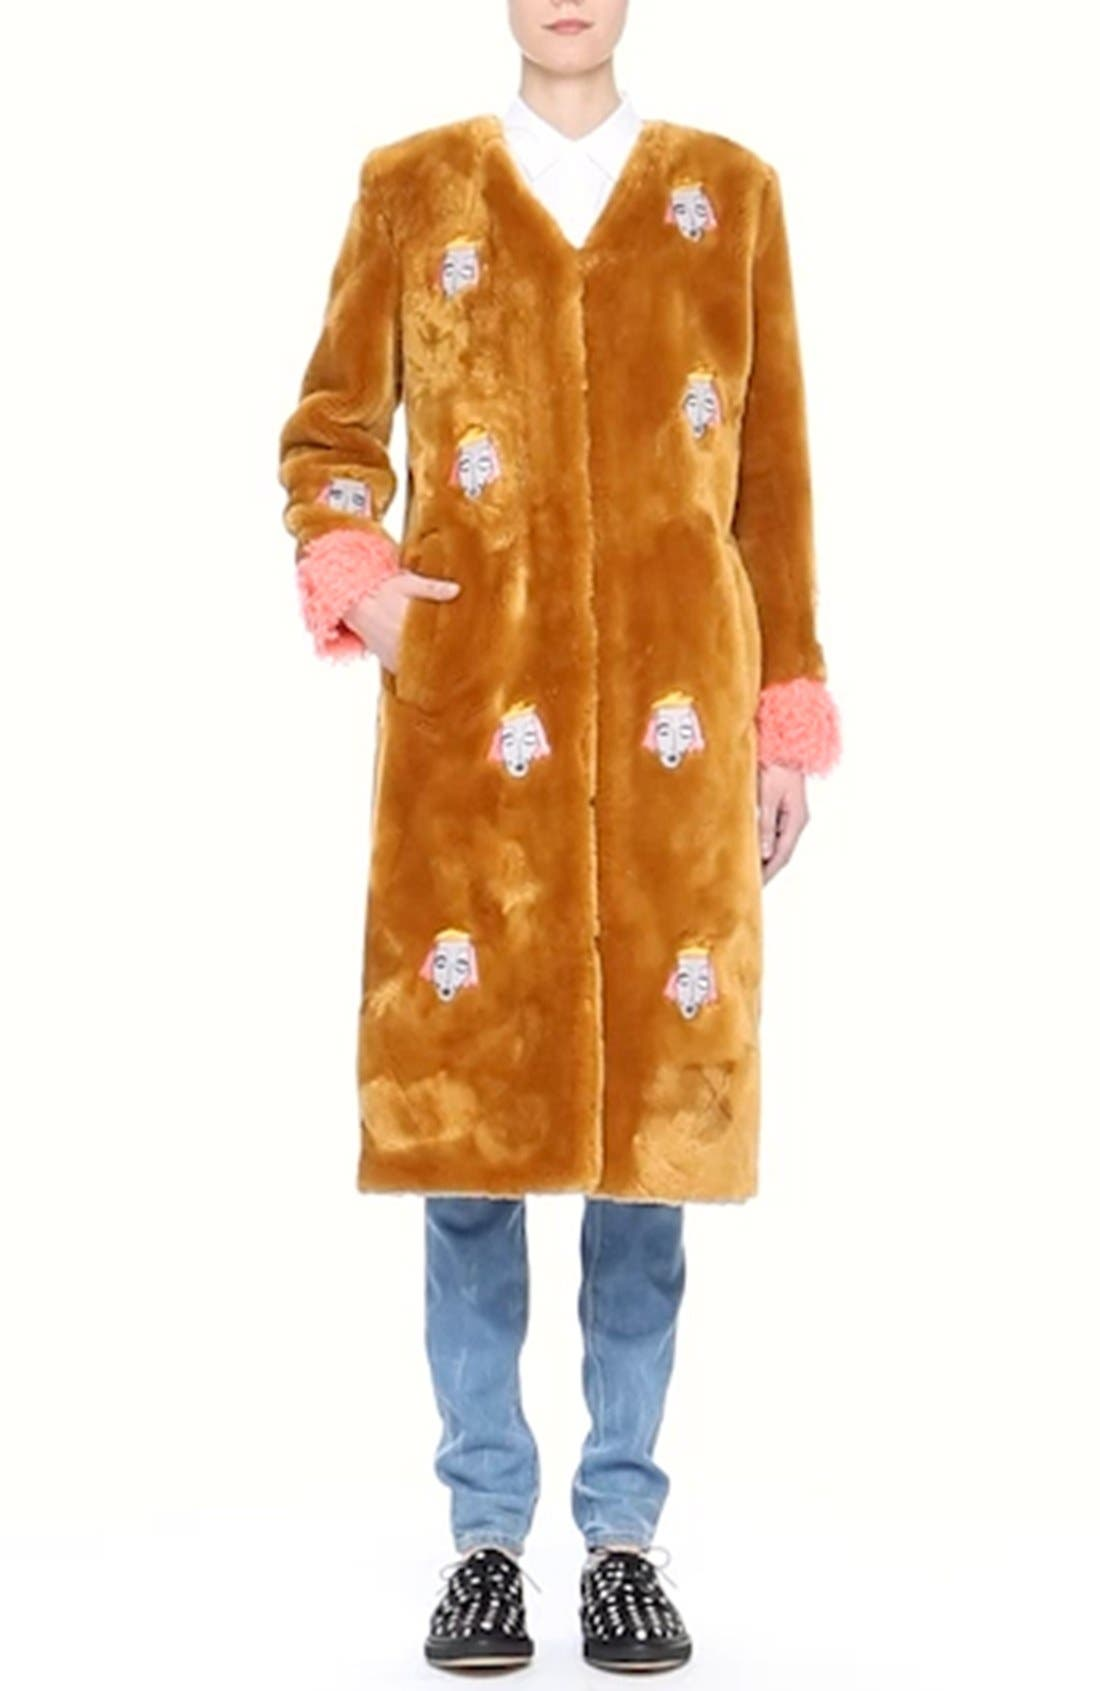 'Frenchie' Faux Fur Coat with Patches,                             Alternate thumbnail 6, color,                             240